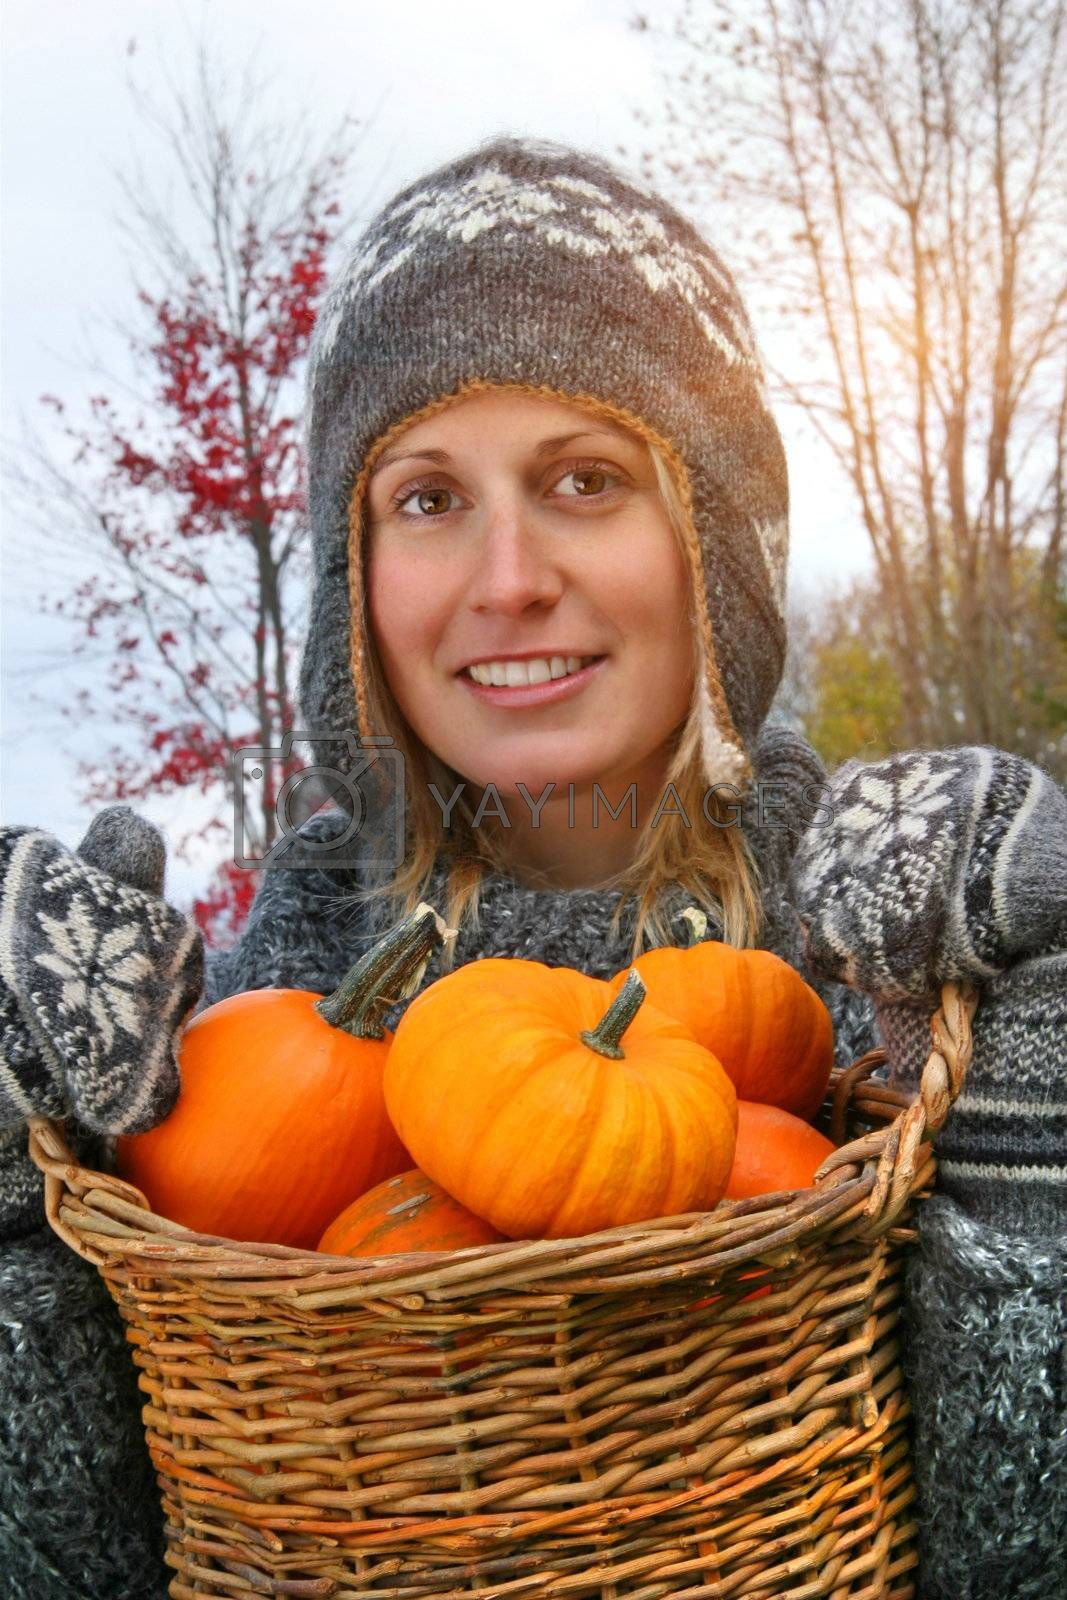 Young woman holding a basket full of small pumpkins